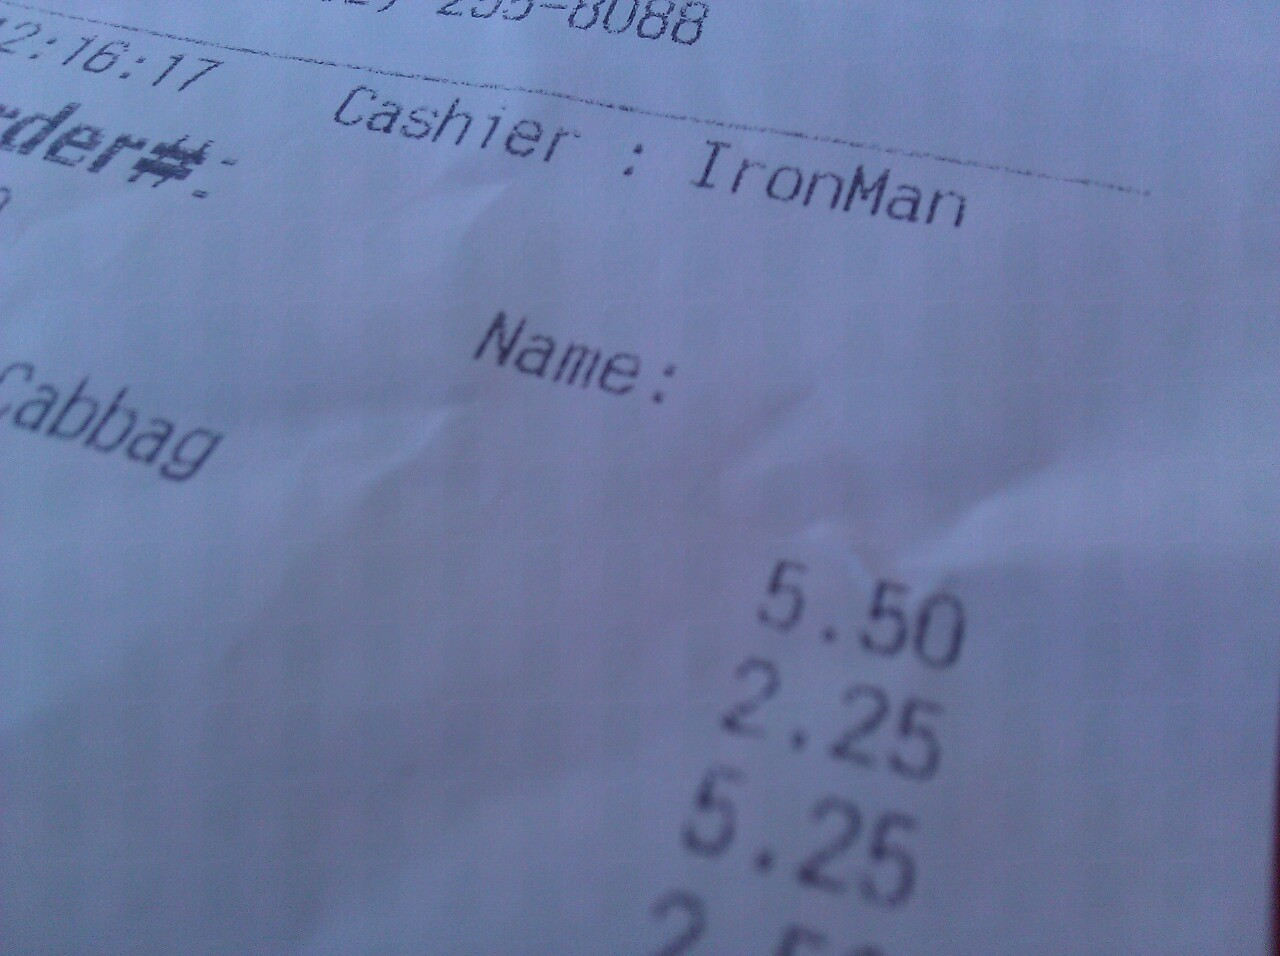 The cashier was IronMan and I had no idea…